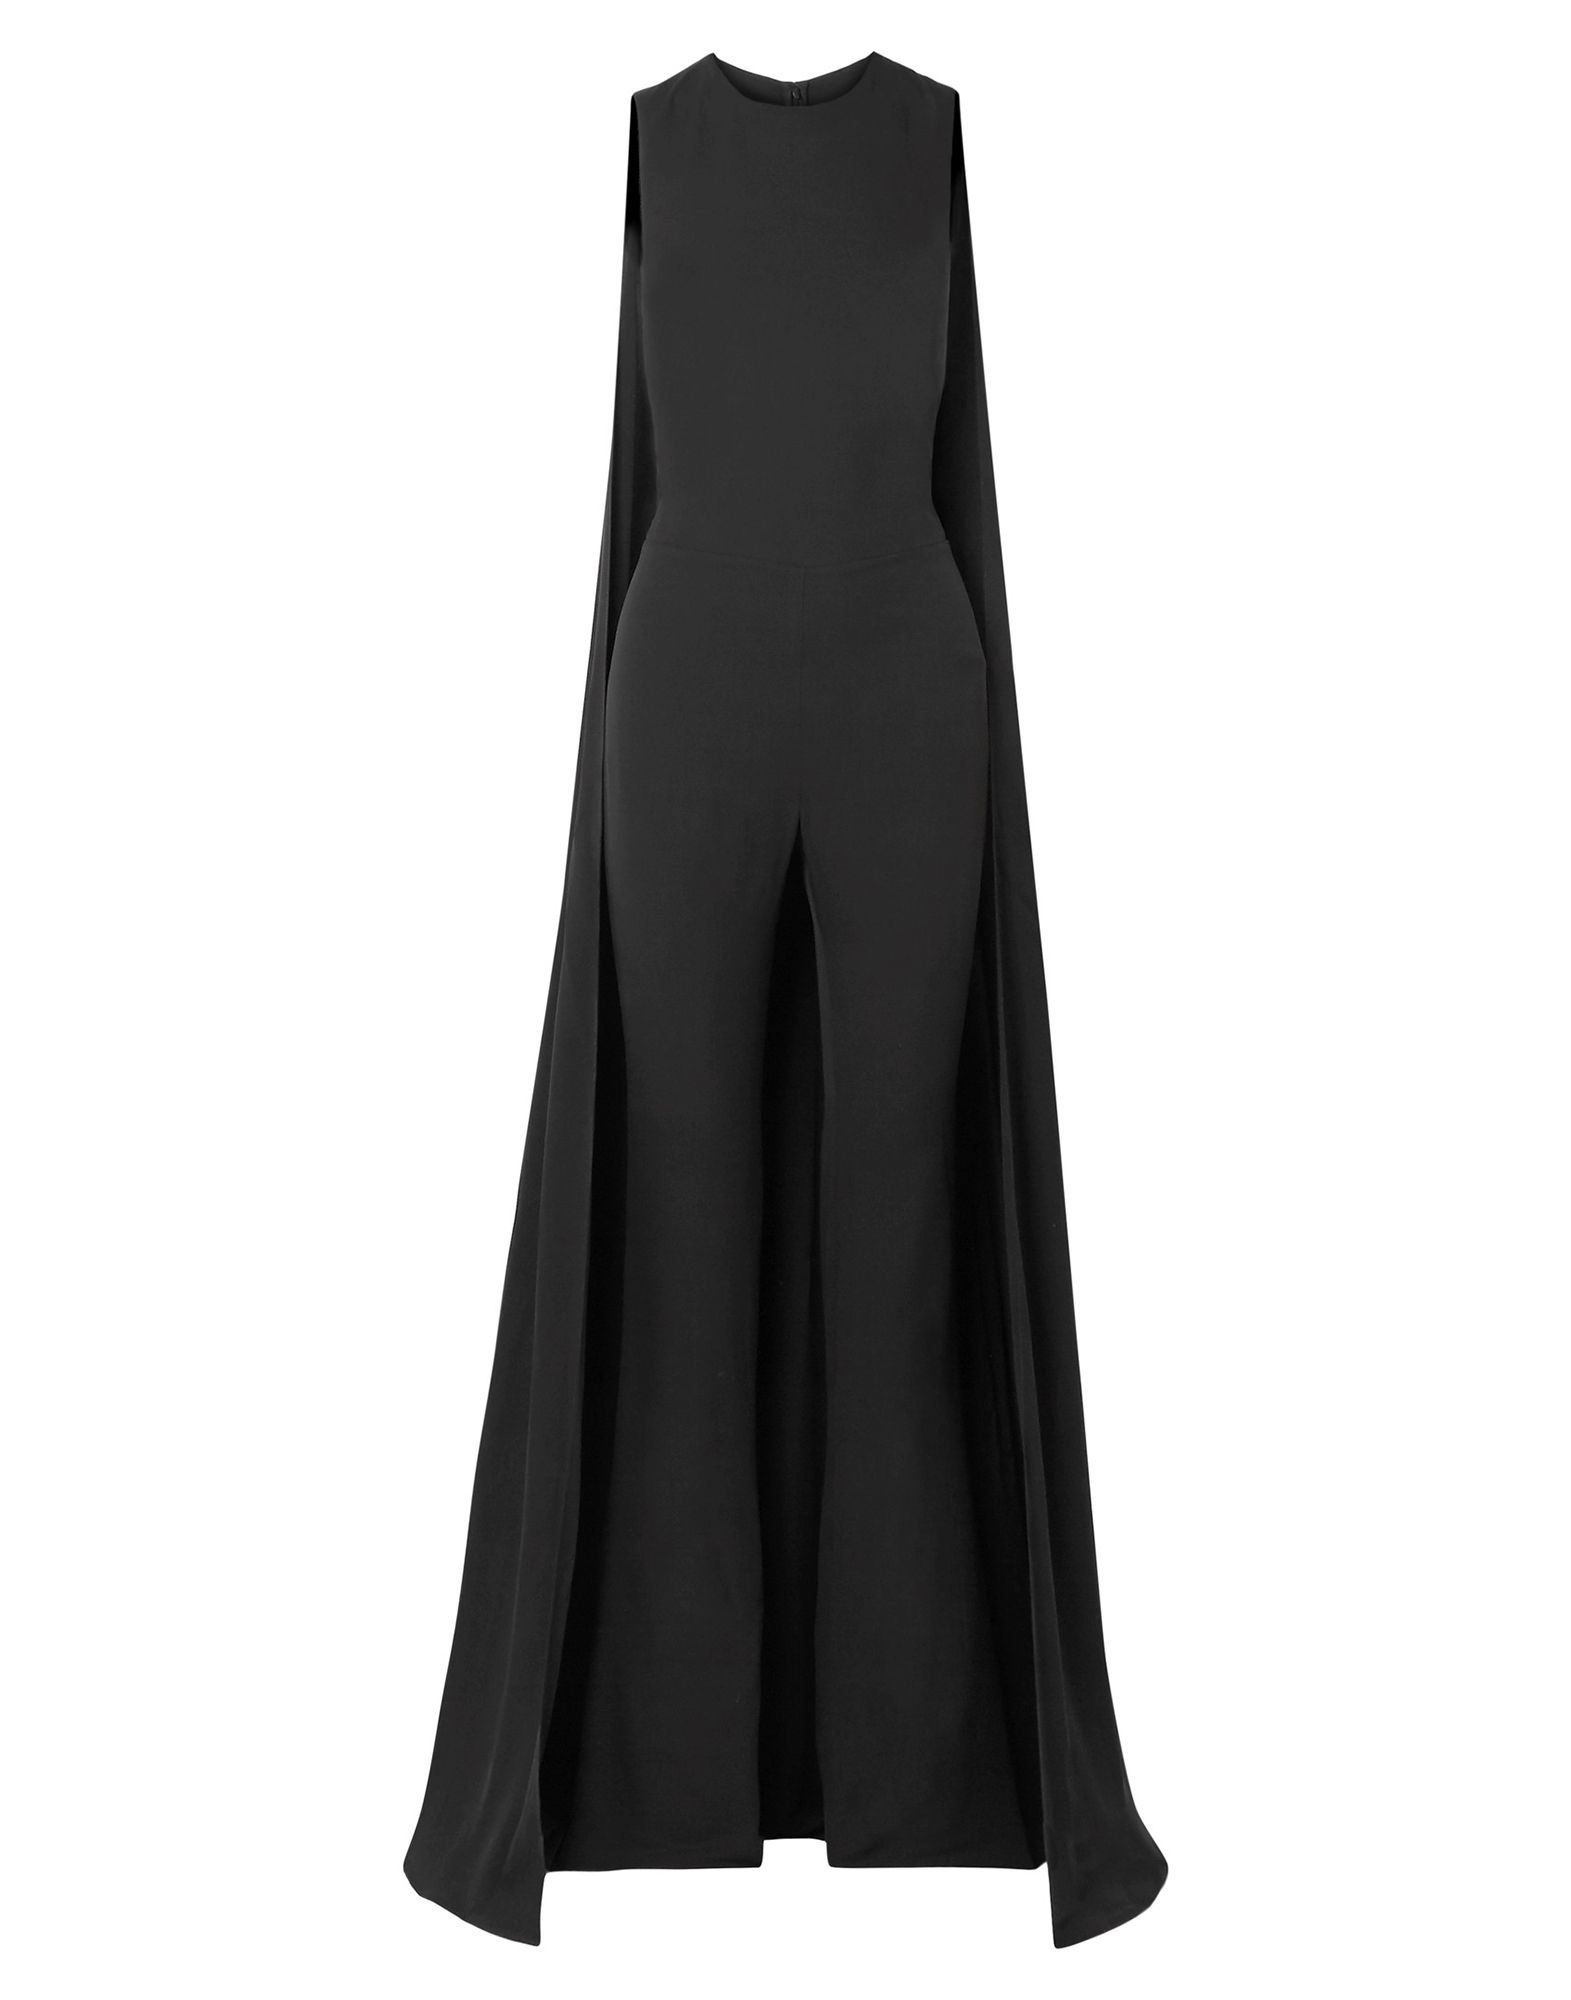 TOM FORD Jumpsuits - Item 54171395